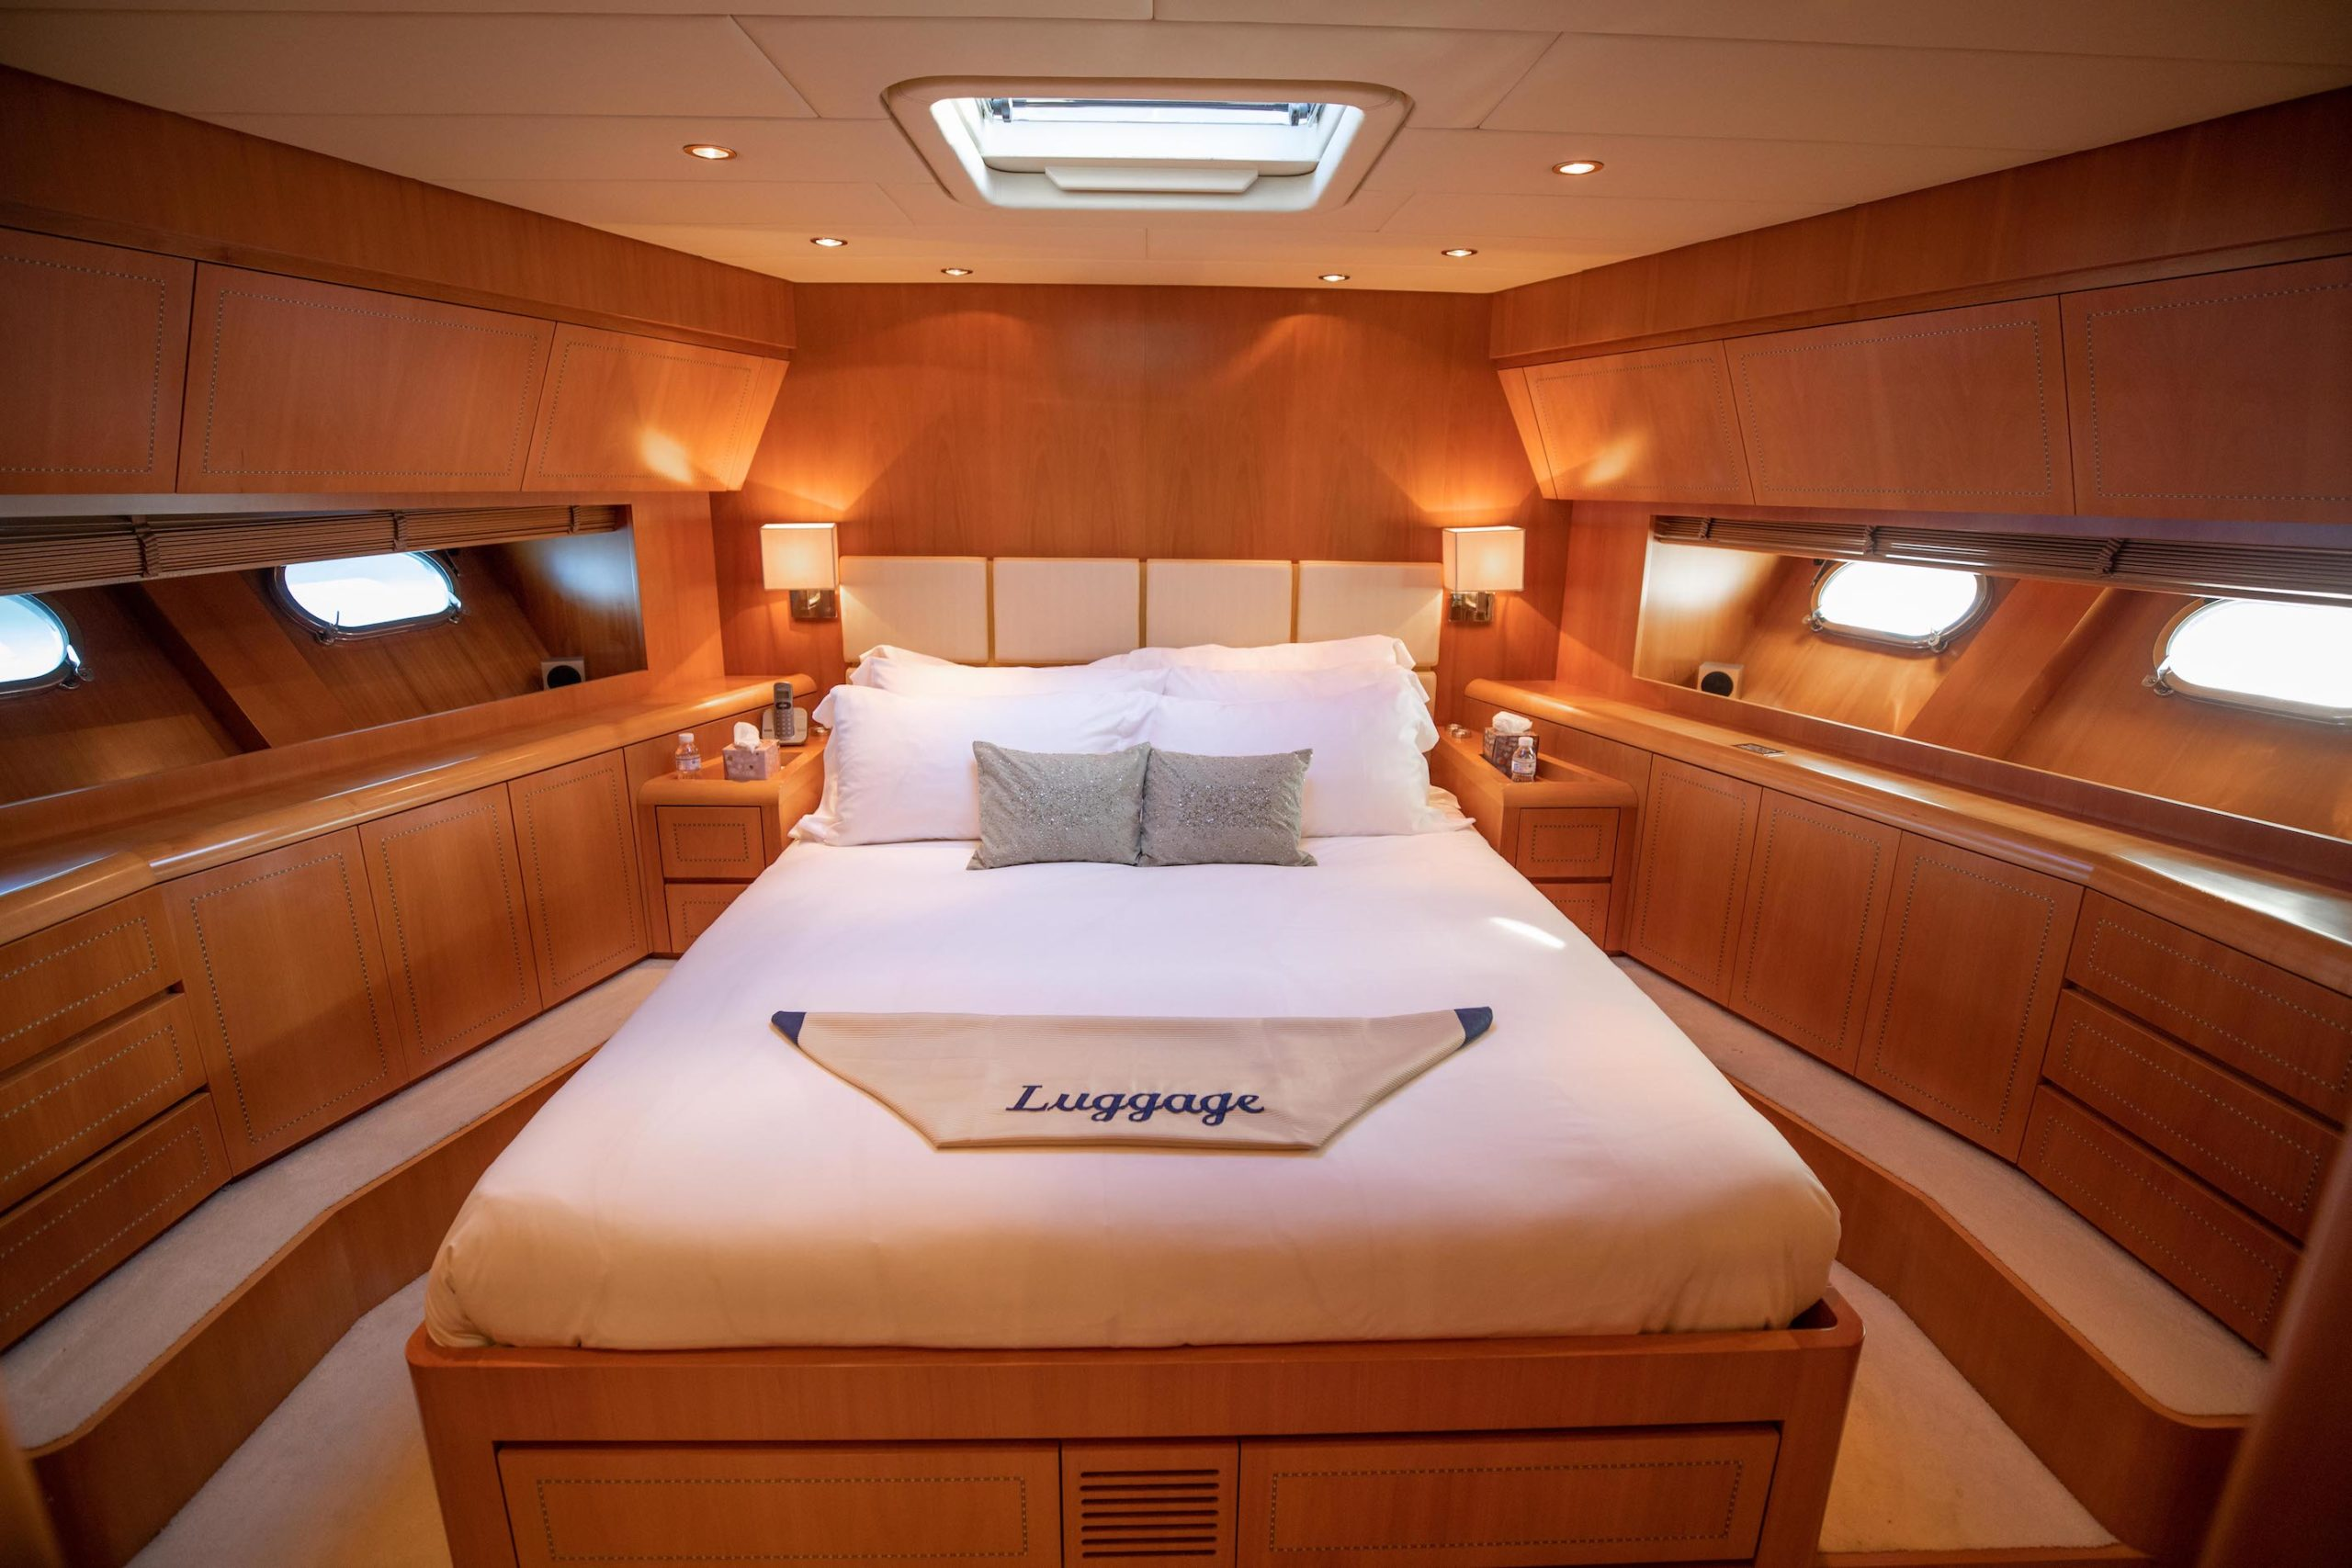 Big cabins for a yacht that size